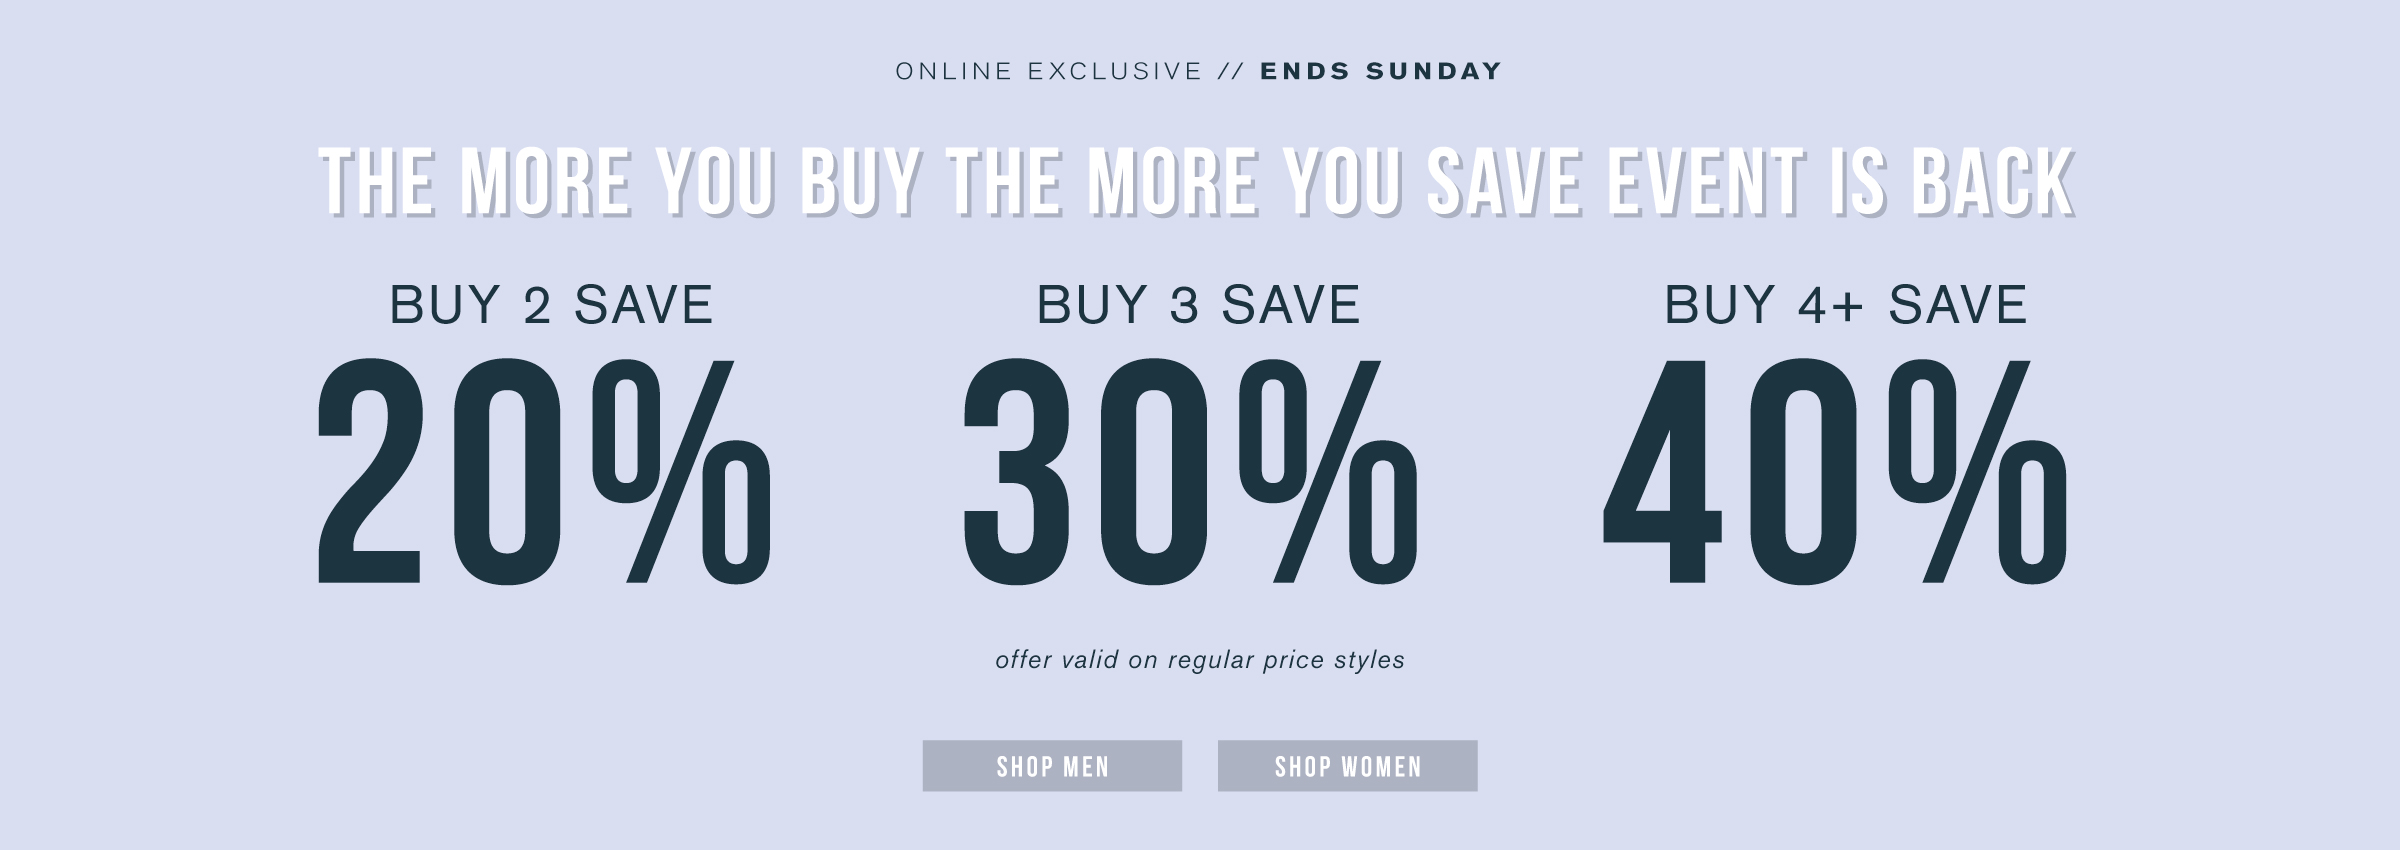 Online exclusive. Ends Sunday. The more you buy the more you save event is back. Buy 2 save 20%. Buy 3 save 30%. Buy 4+ save 40%. Offer valid on regular price styles. Shop men. Shop women.